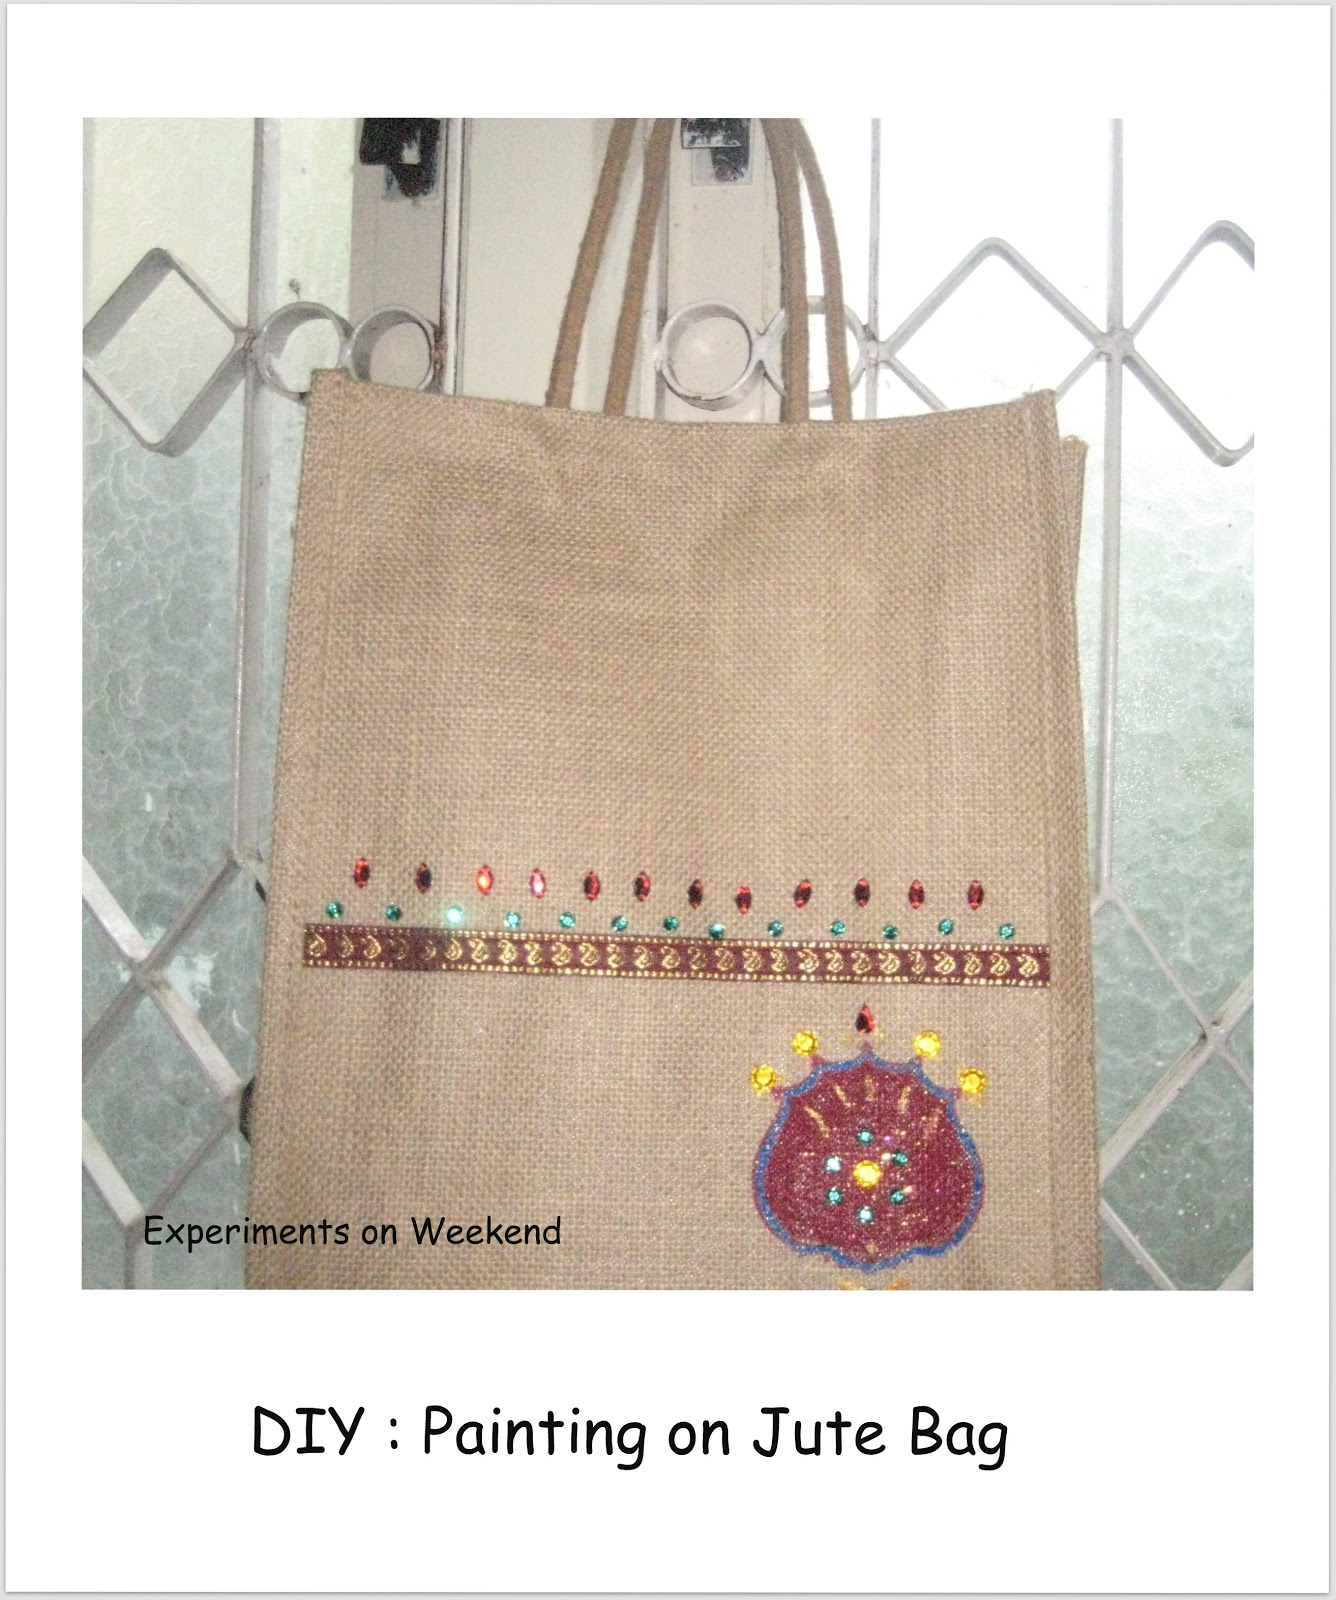 Experiments on weekend diy painting on jute bag for Diy jute